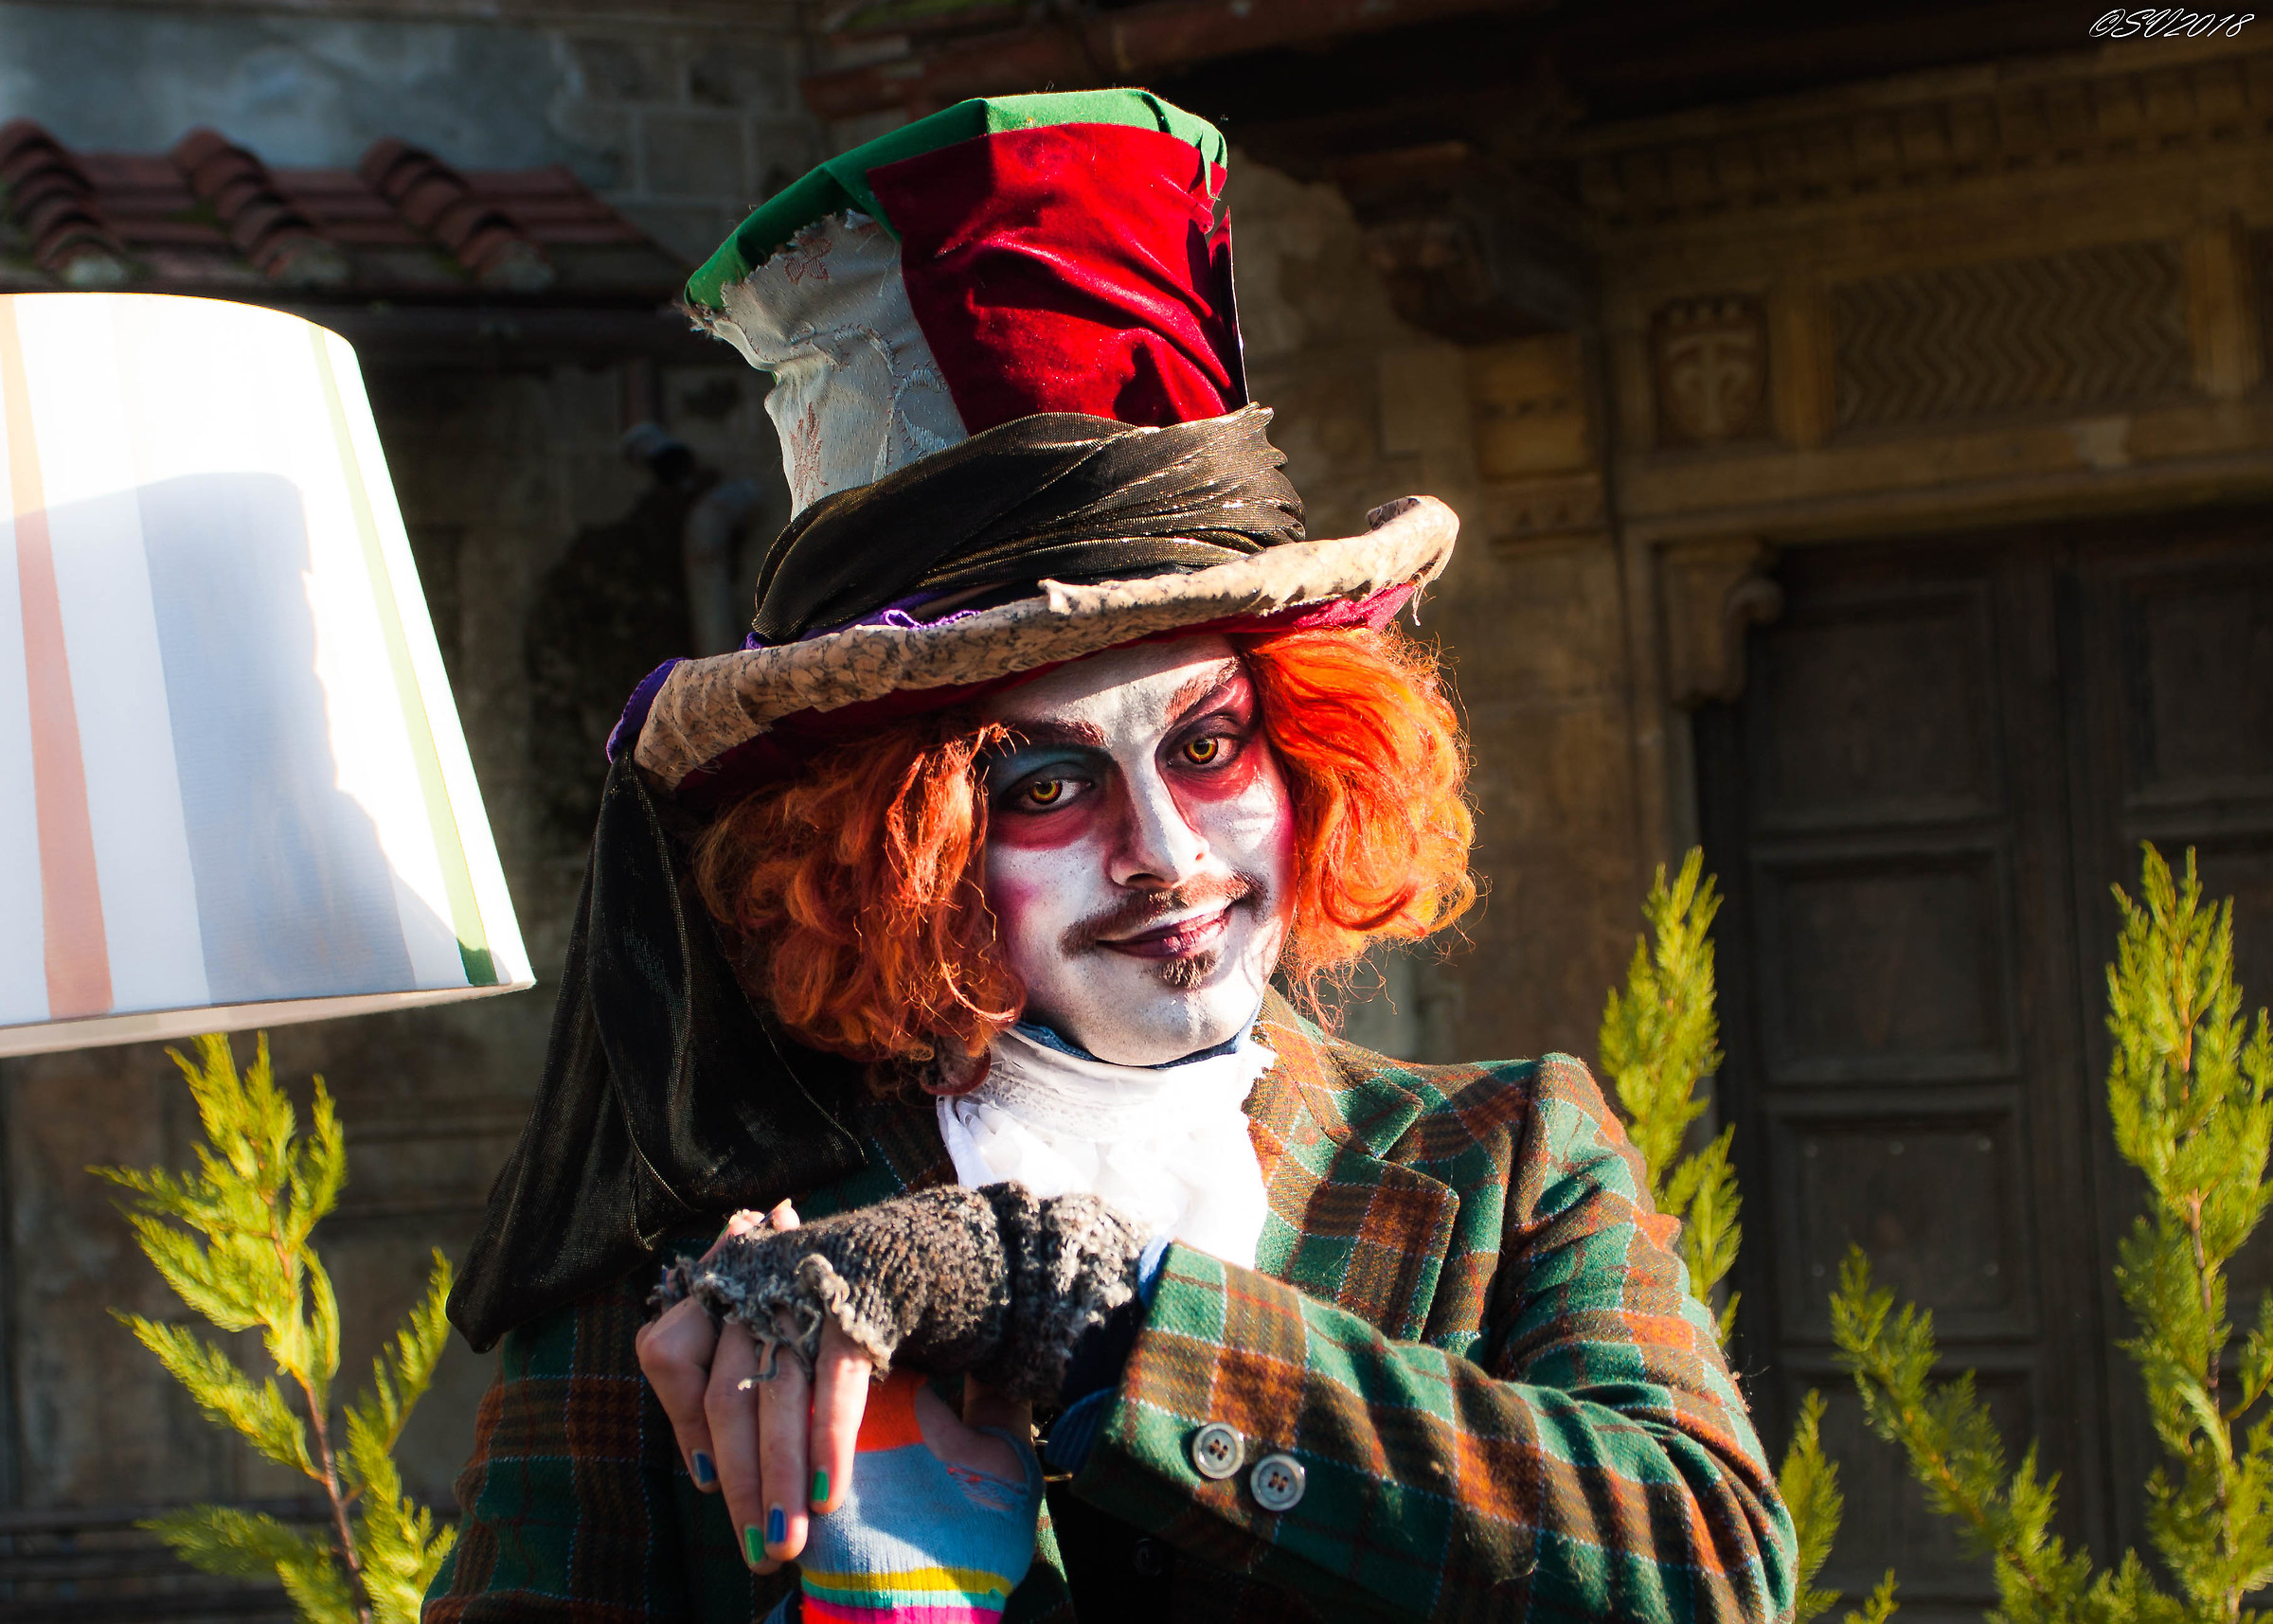 The mad hatter 2...